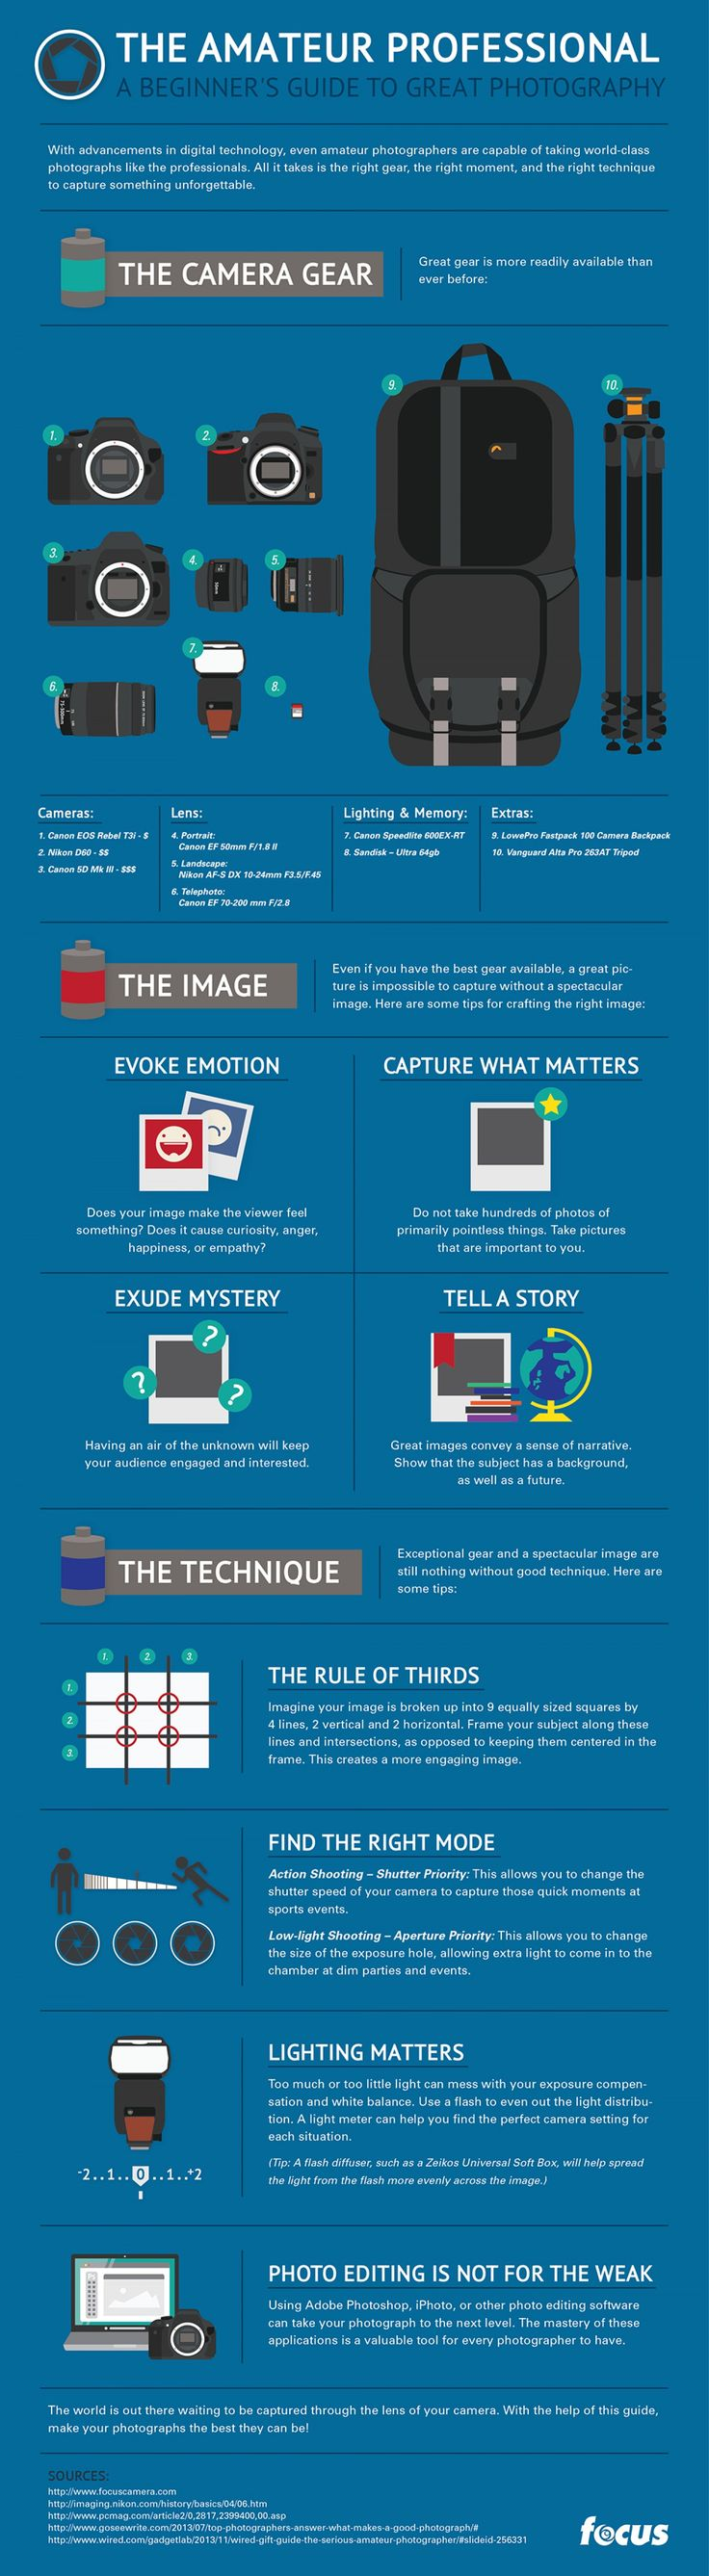 A Beginners Guide to Photography in words and pictures....